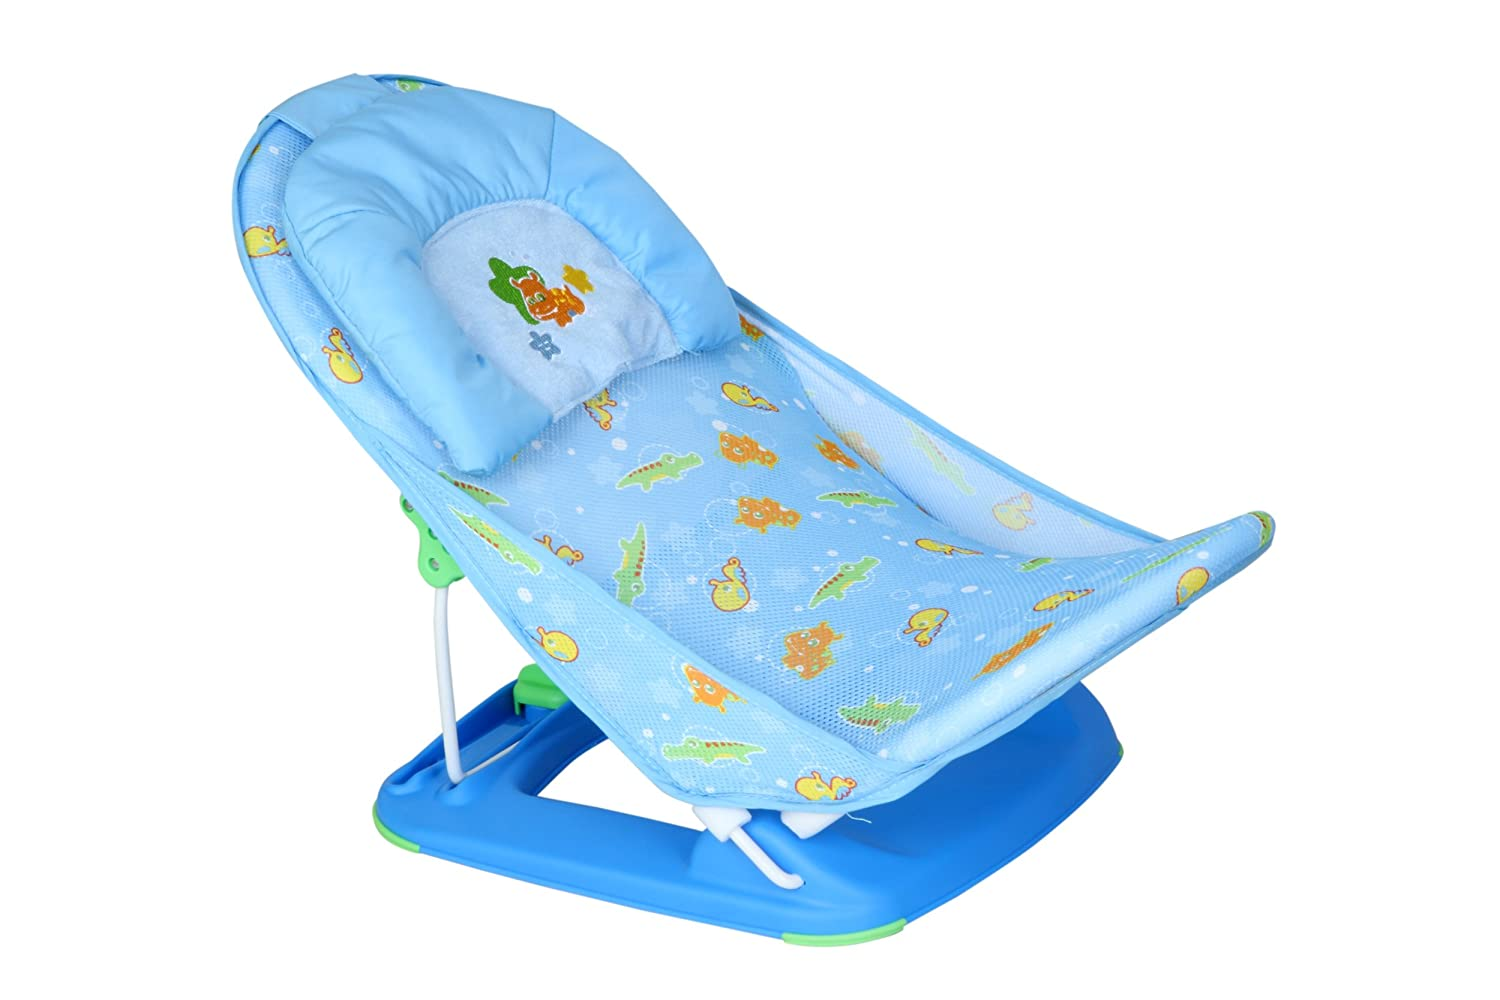 Buy Infanto Baby Bather (Blue) Online at Low Prices in India - Amazon.in